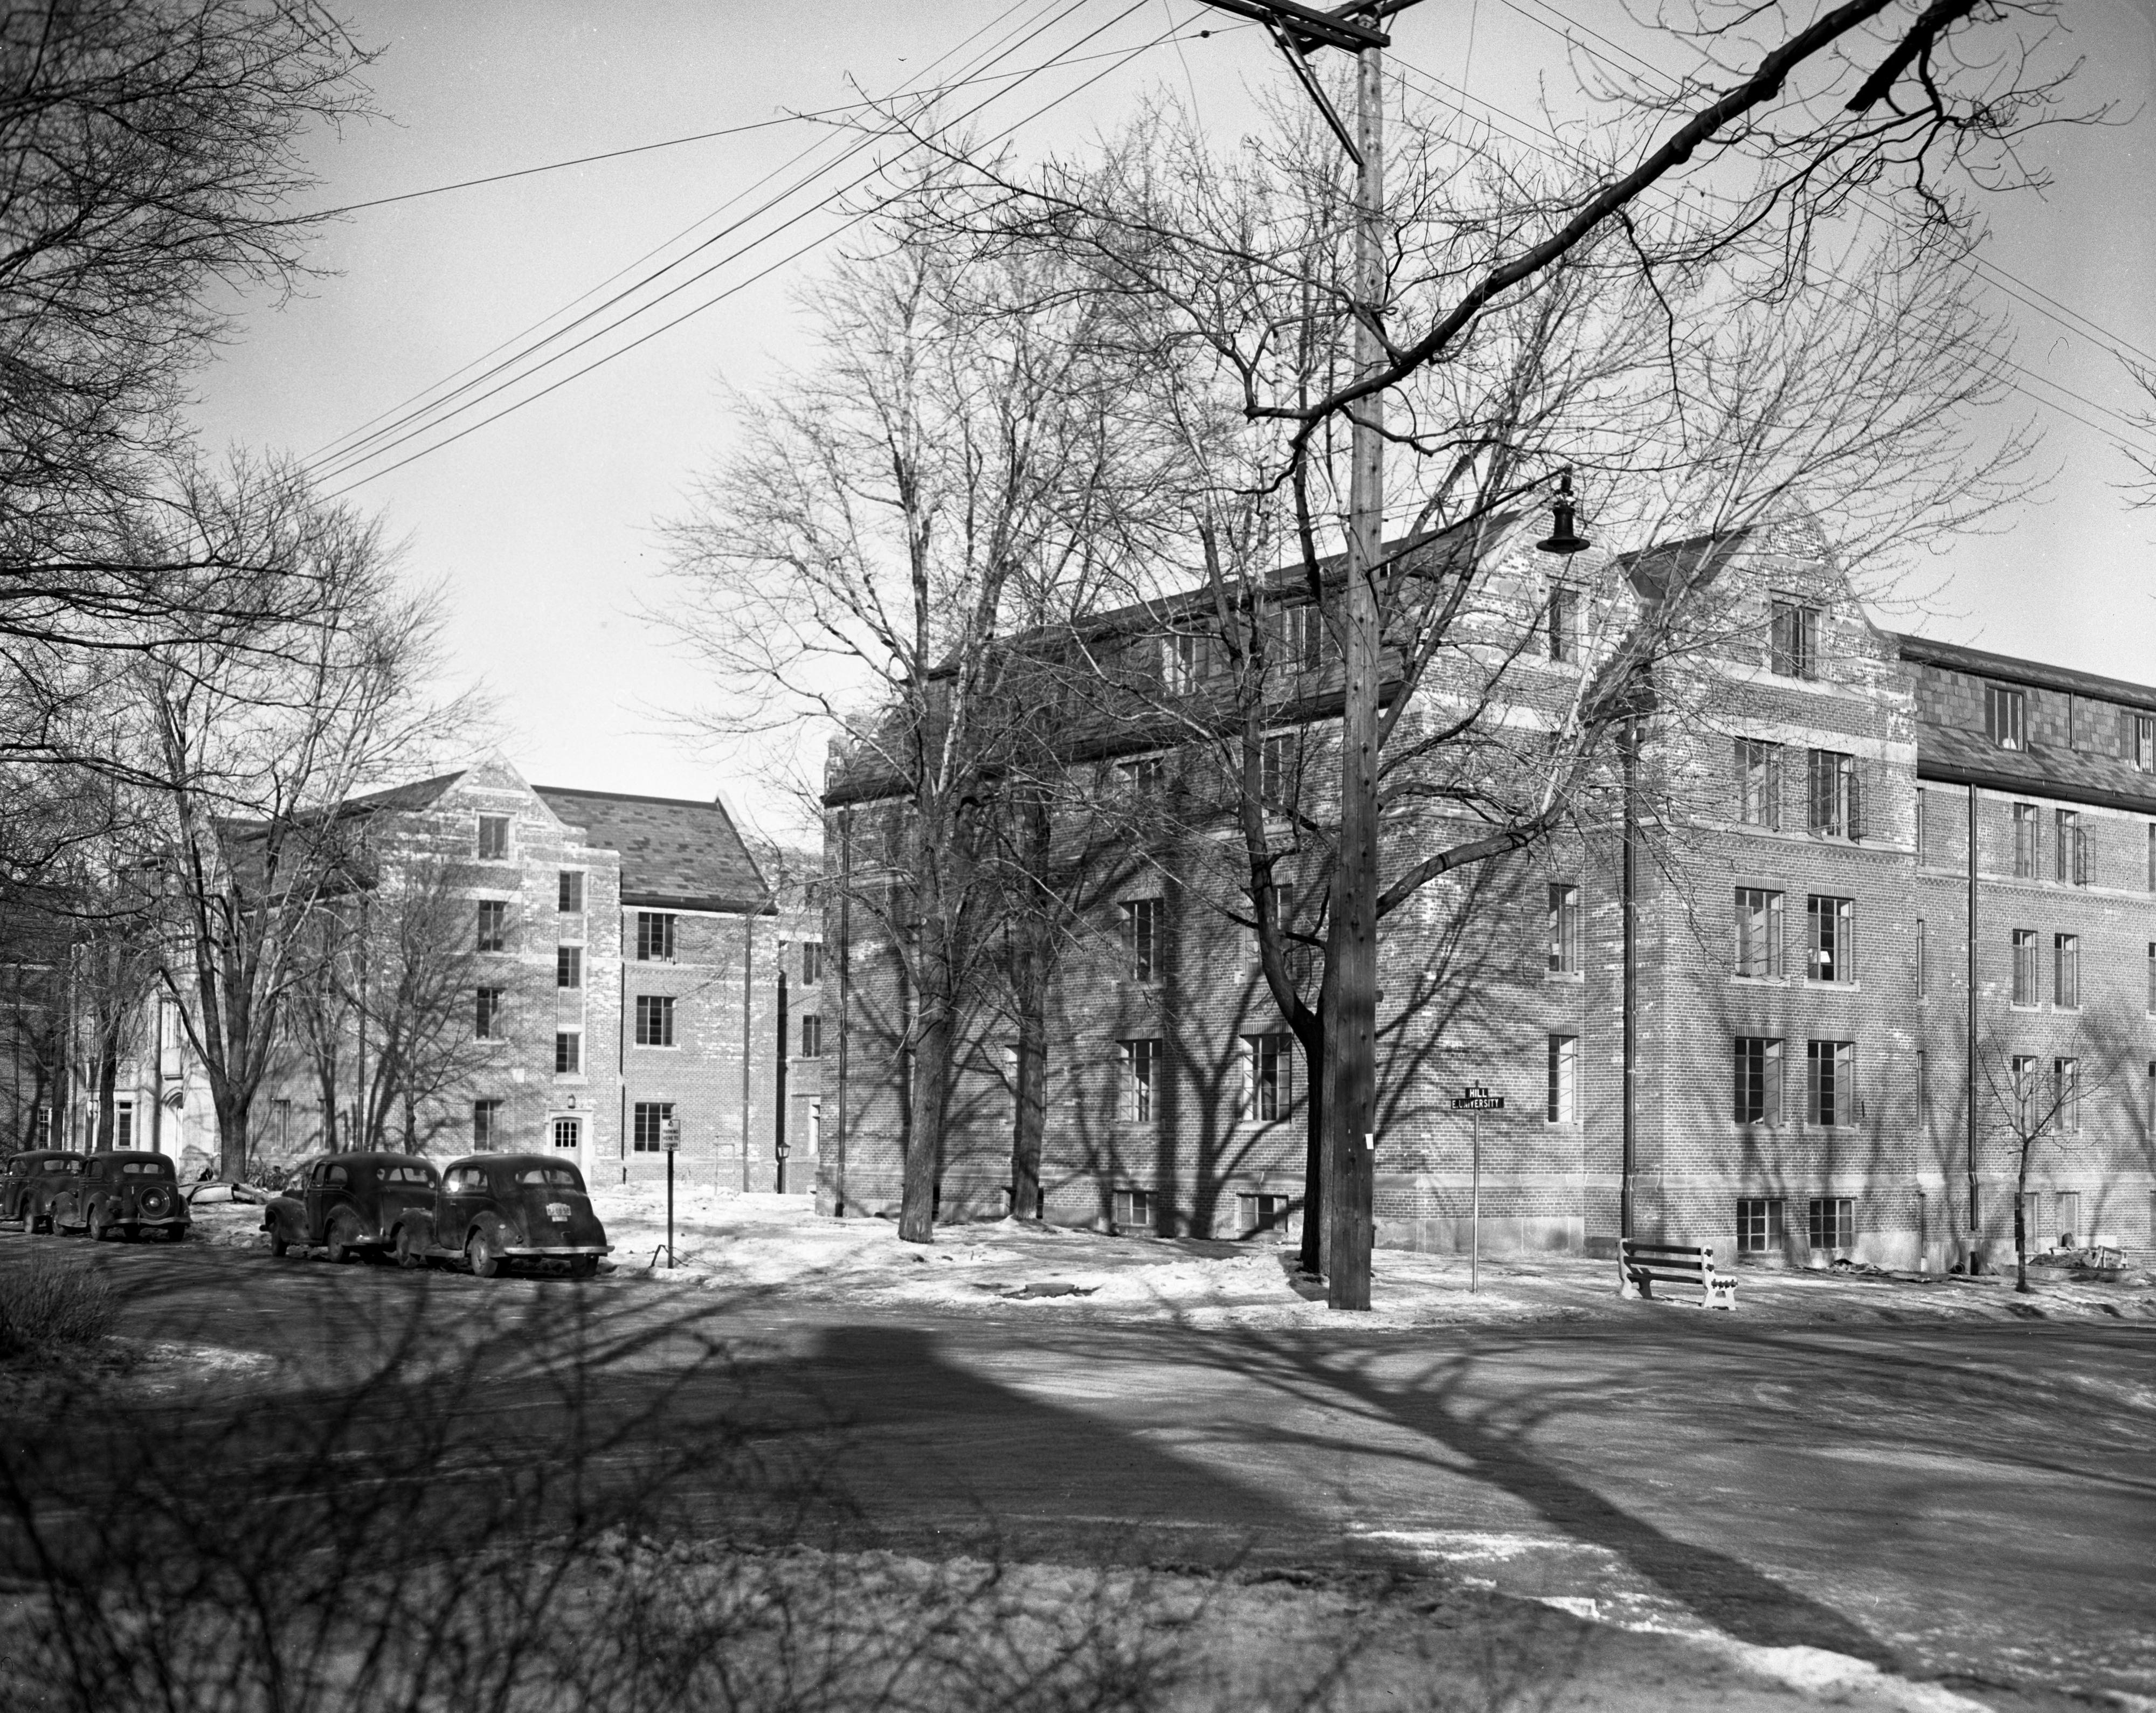 New addition to the East Quadrangle dormitory at Hill St. and E. University Ave., January 1948 image